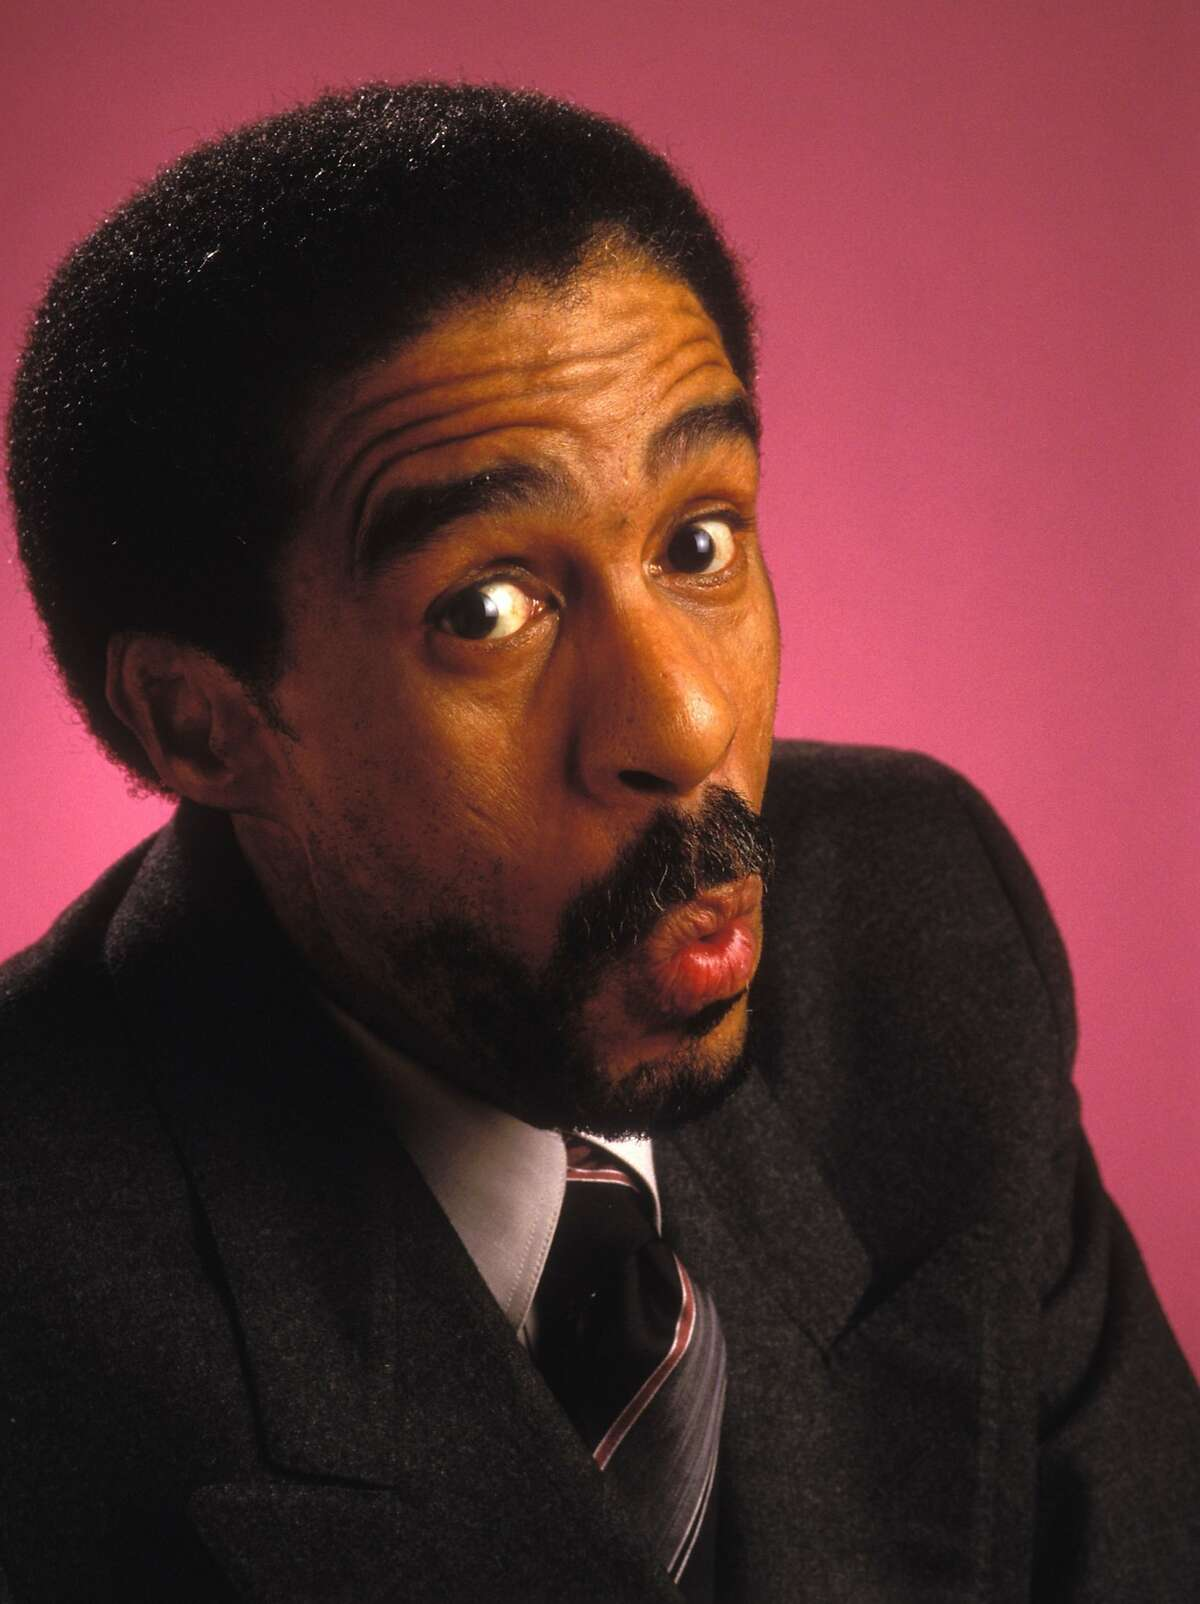 Richard Pryor at the Beverly Hills Hotel in 1987. Richard Pryor at the Beverly Hills Hotel in Beverly Hills, California (Photo by Bob Riha Jr/WireImage)